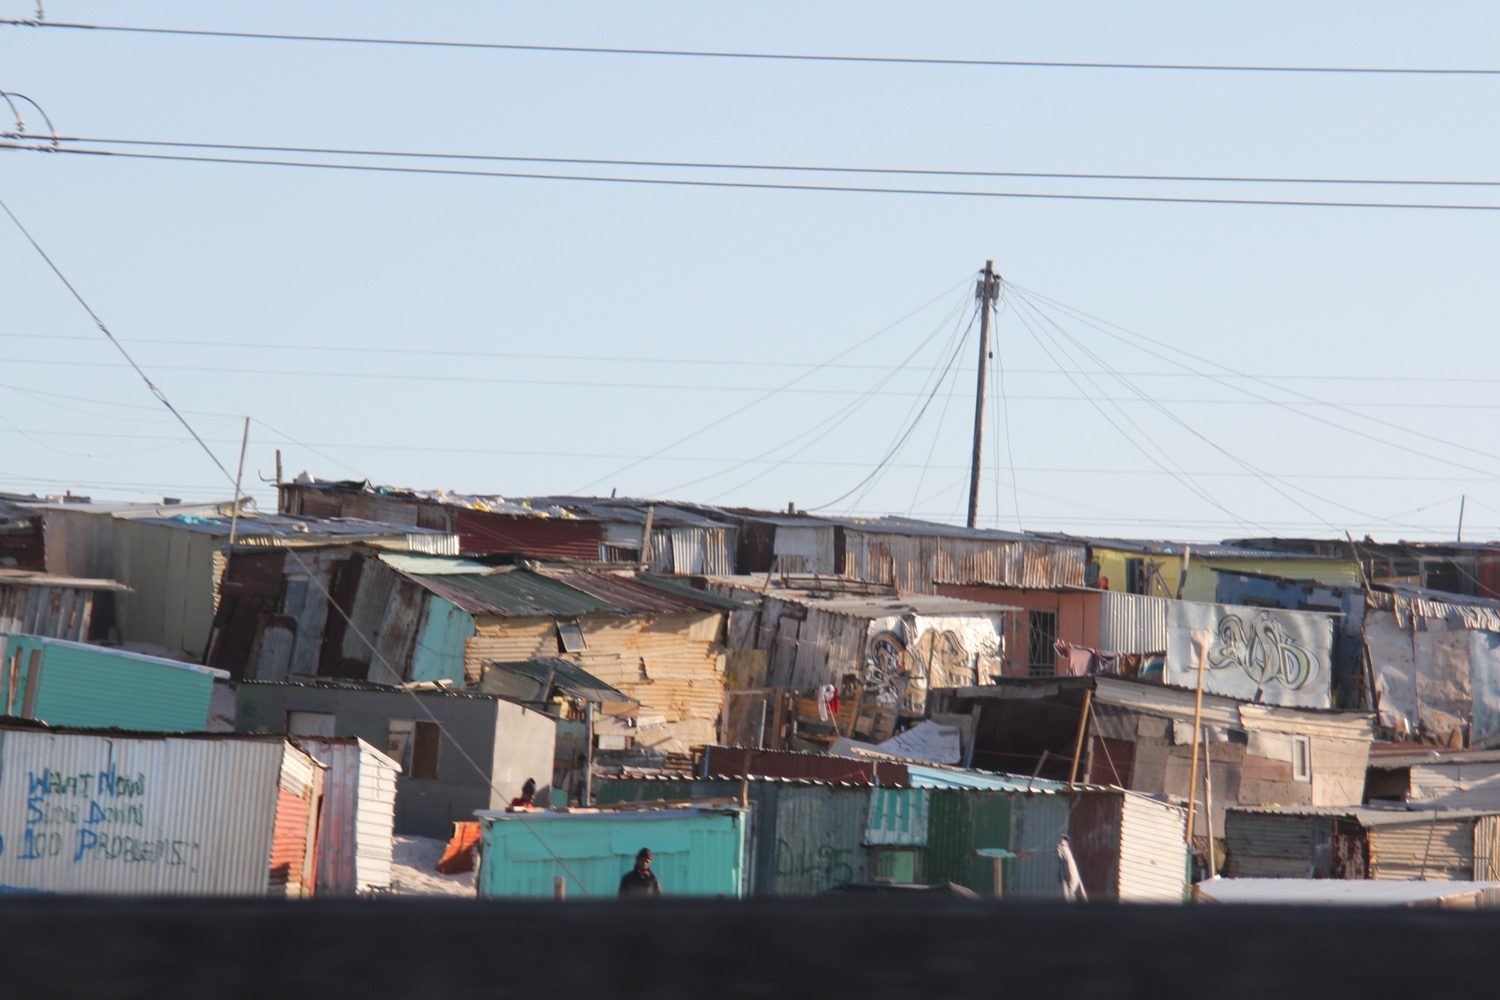 Cape Town Poverty - 40